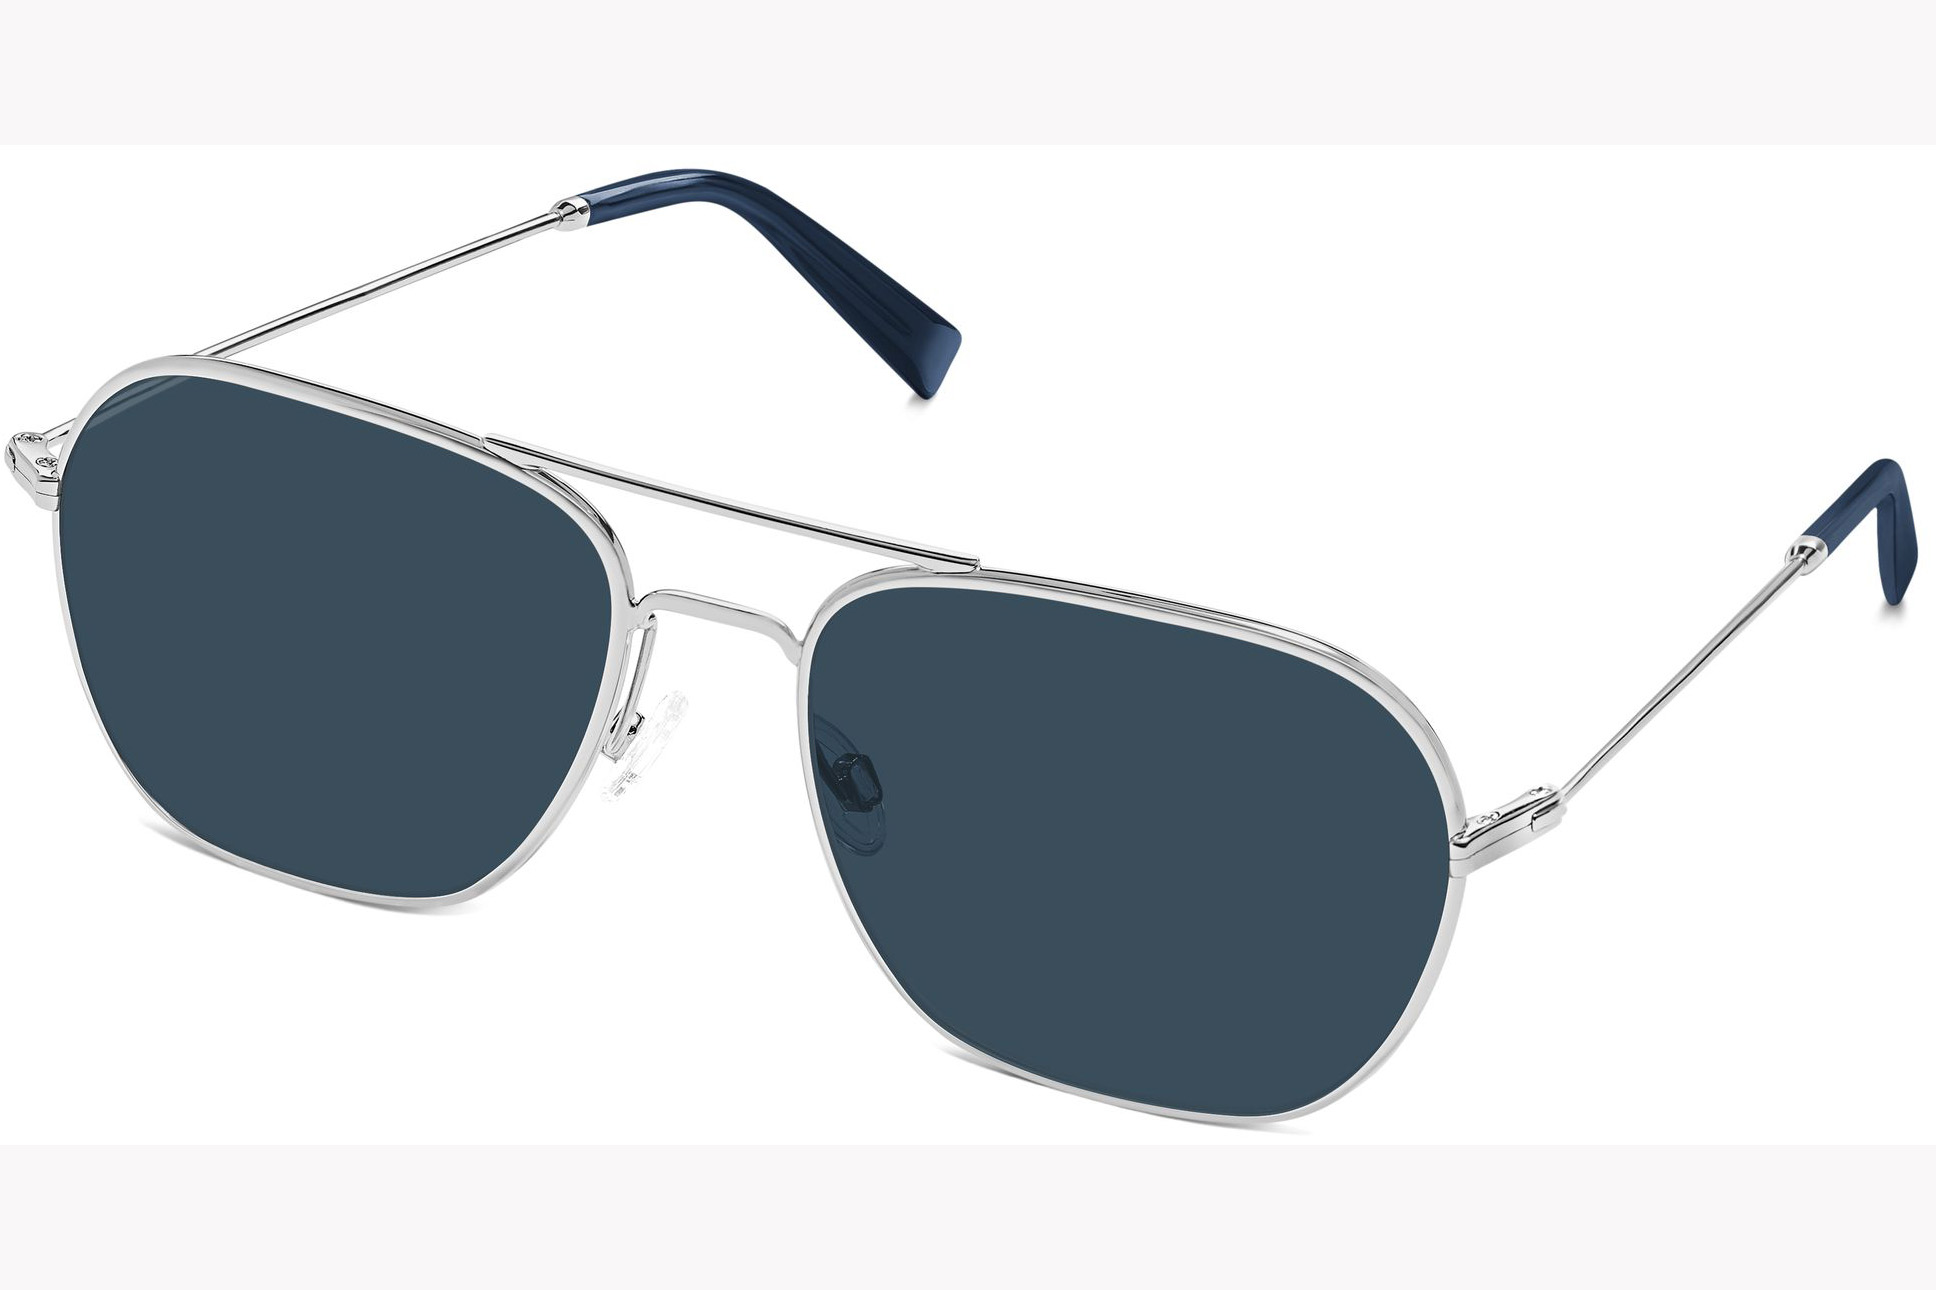 9 Great Sunglasses for Summer From Warby Parker - Men's Journal